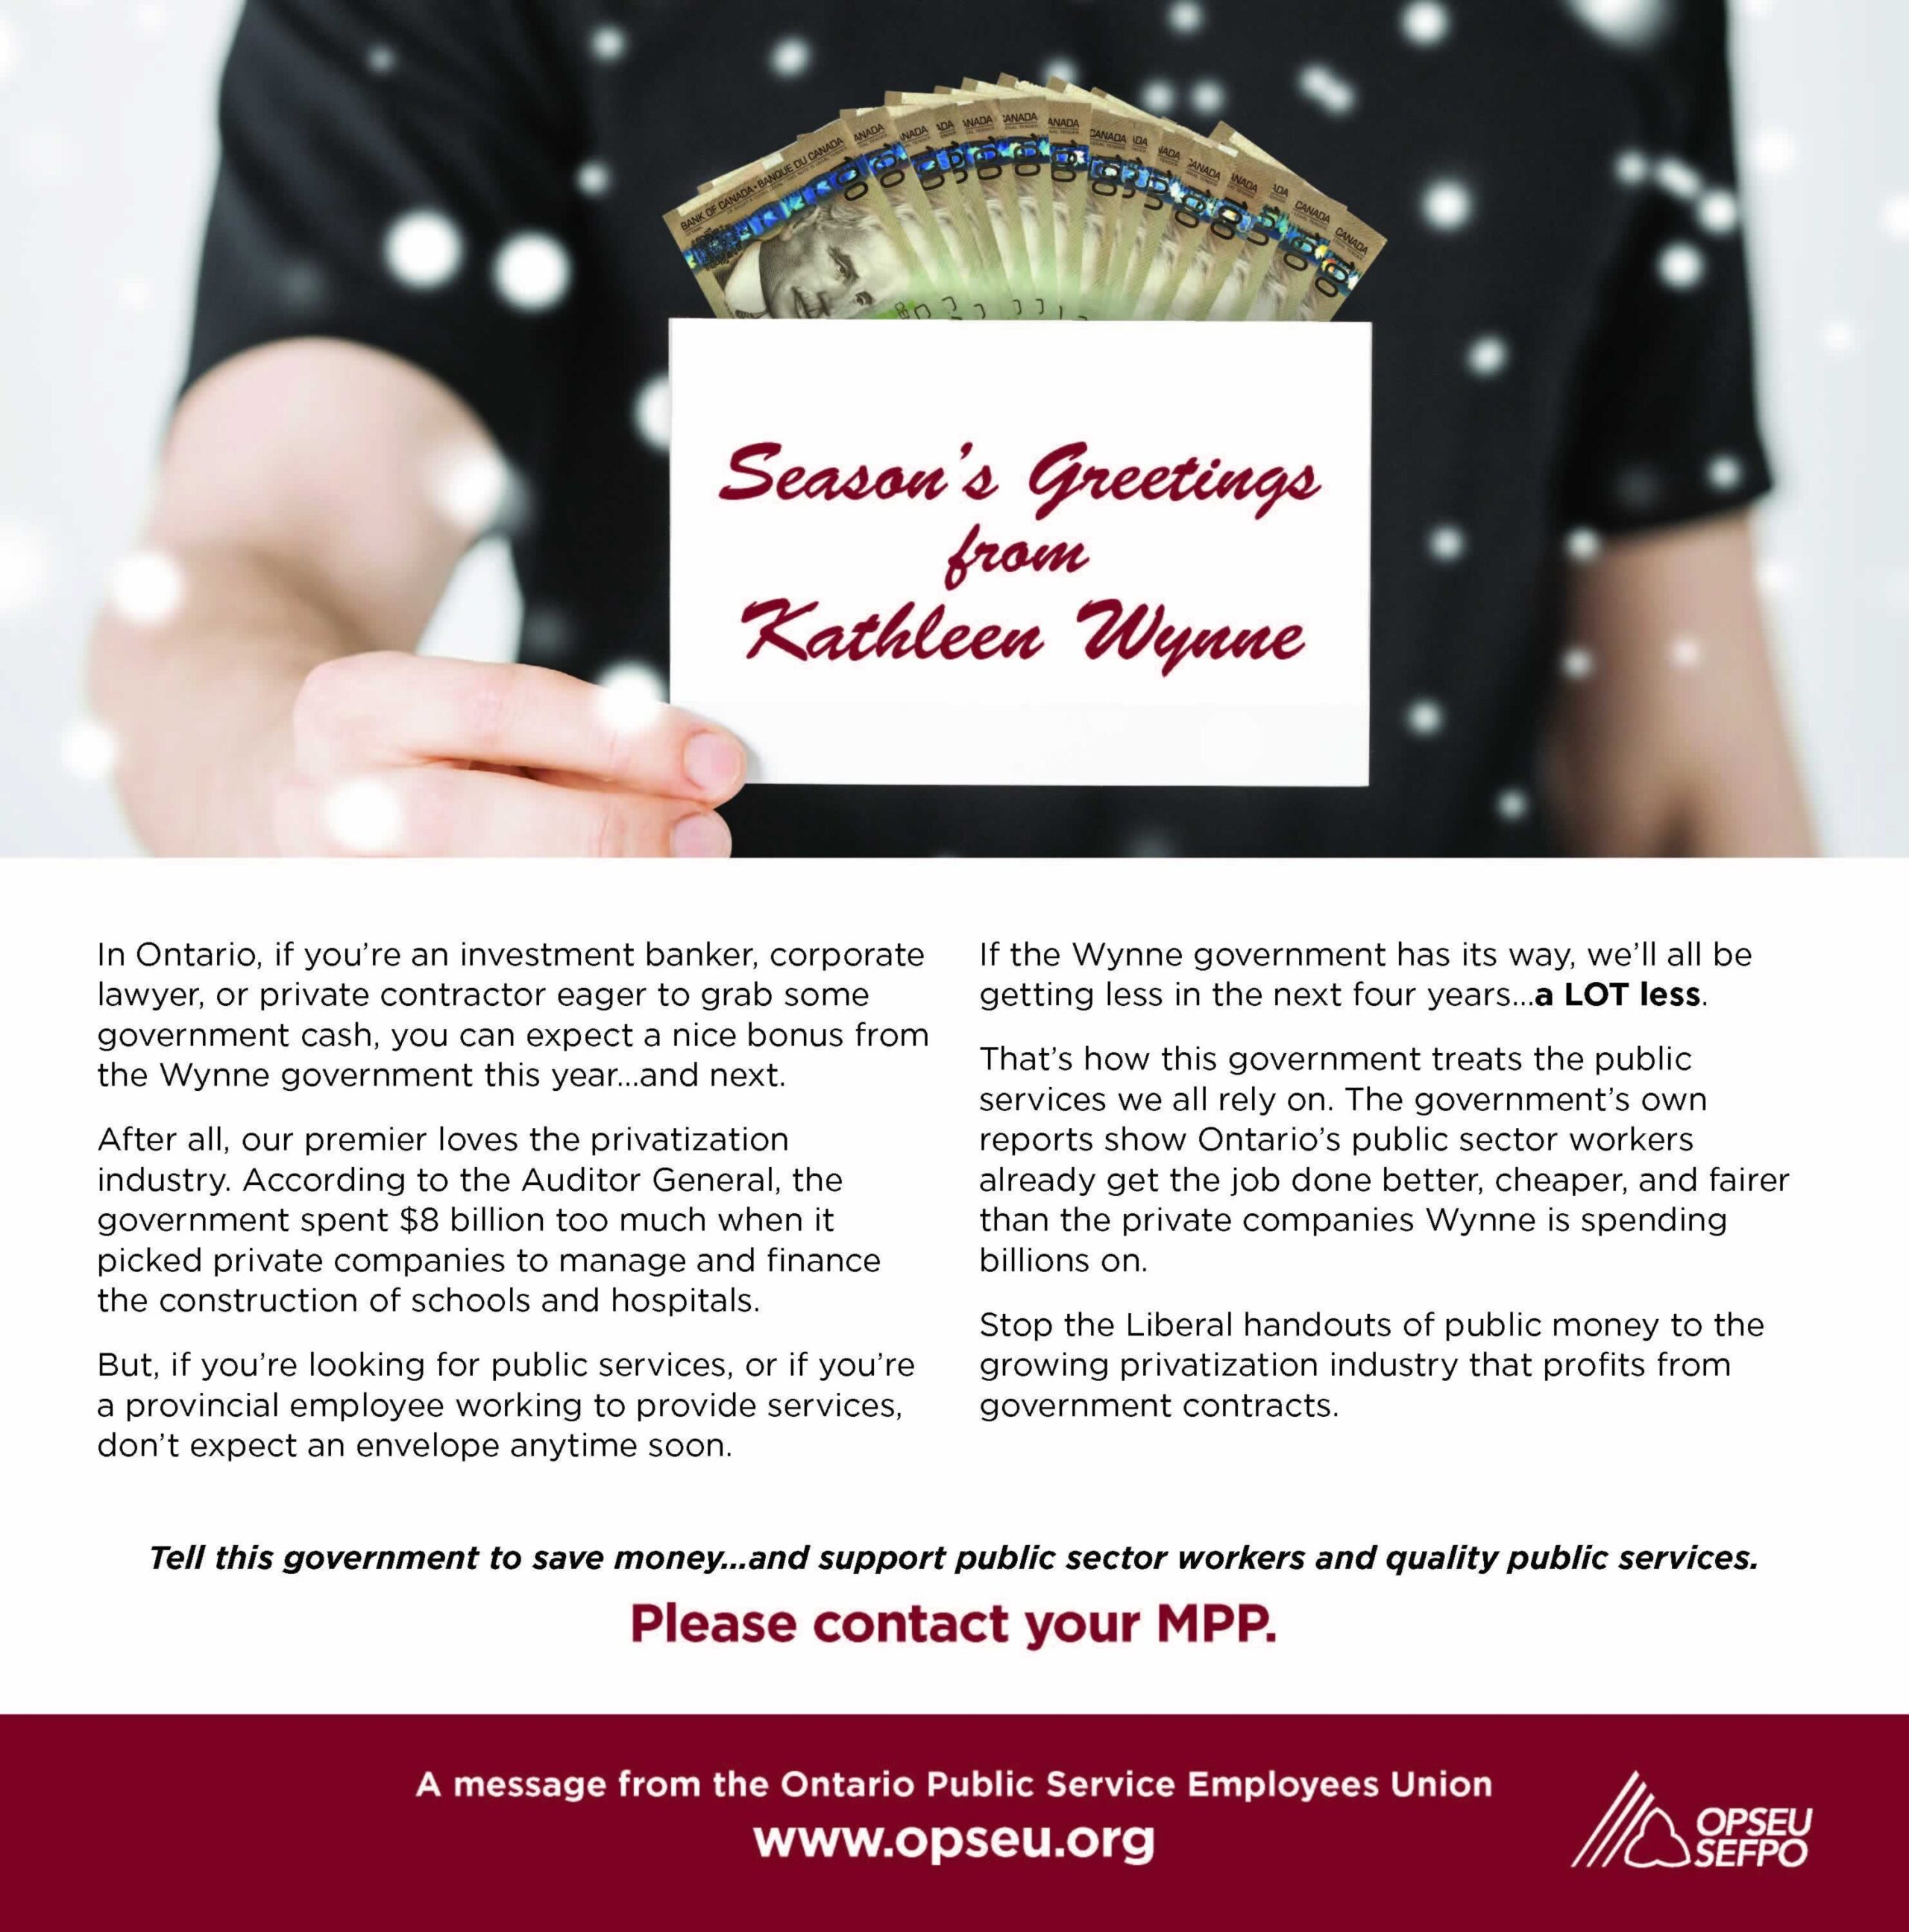 Season's greetings from Kathleen Wynne. Please contact your MPP card